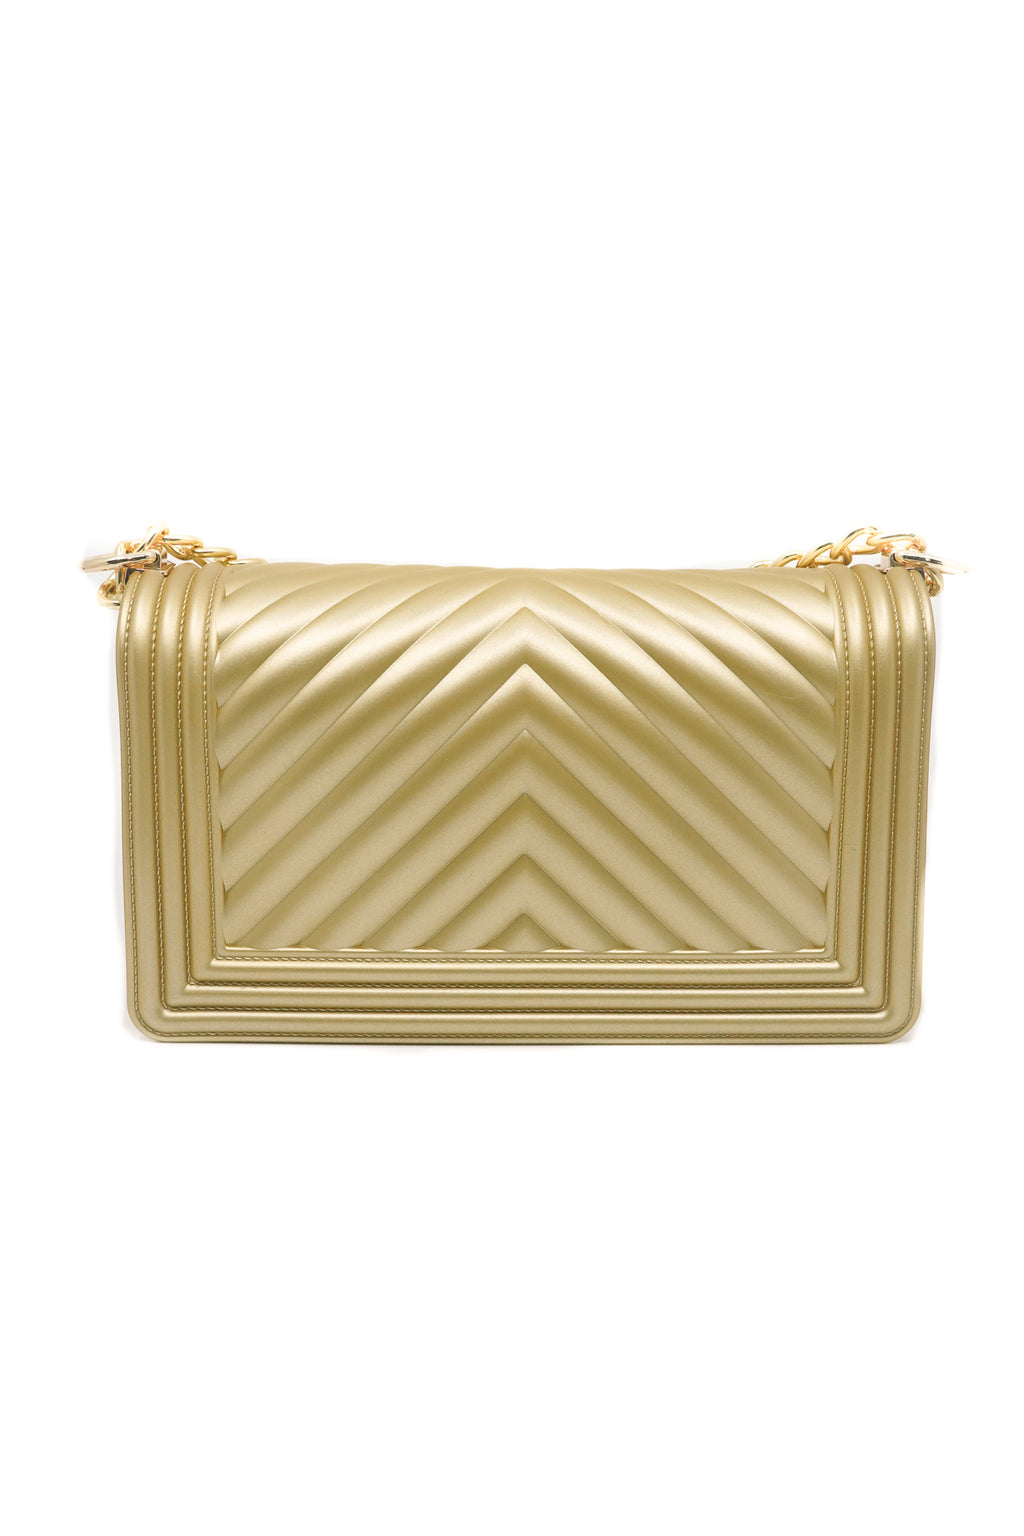 Women Chevron Embossed Frosted Jelly Shoulder V Pattern Bag in Gold